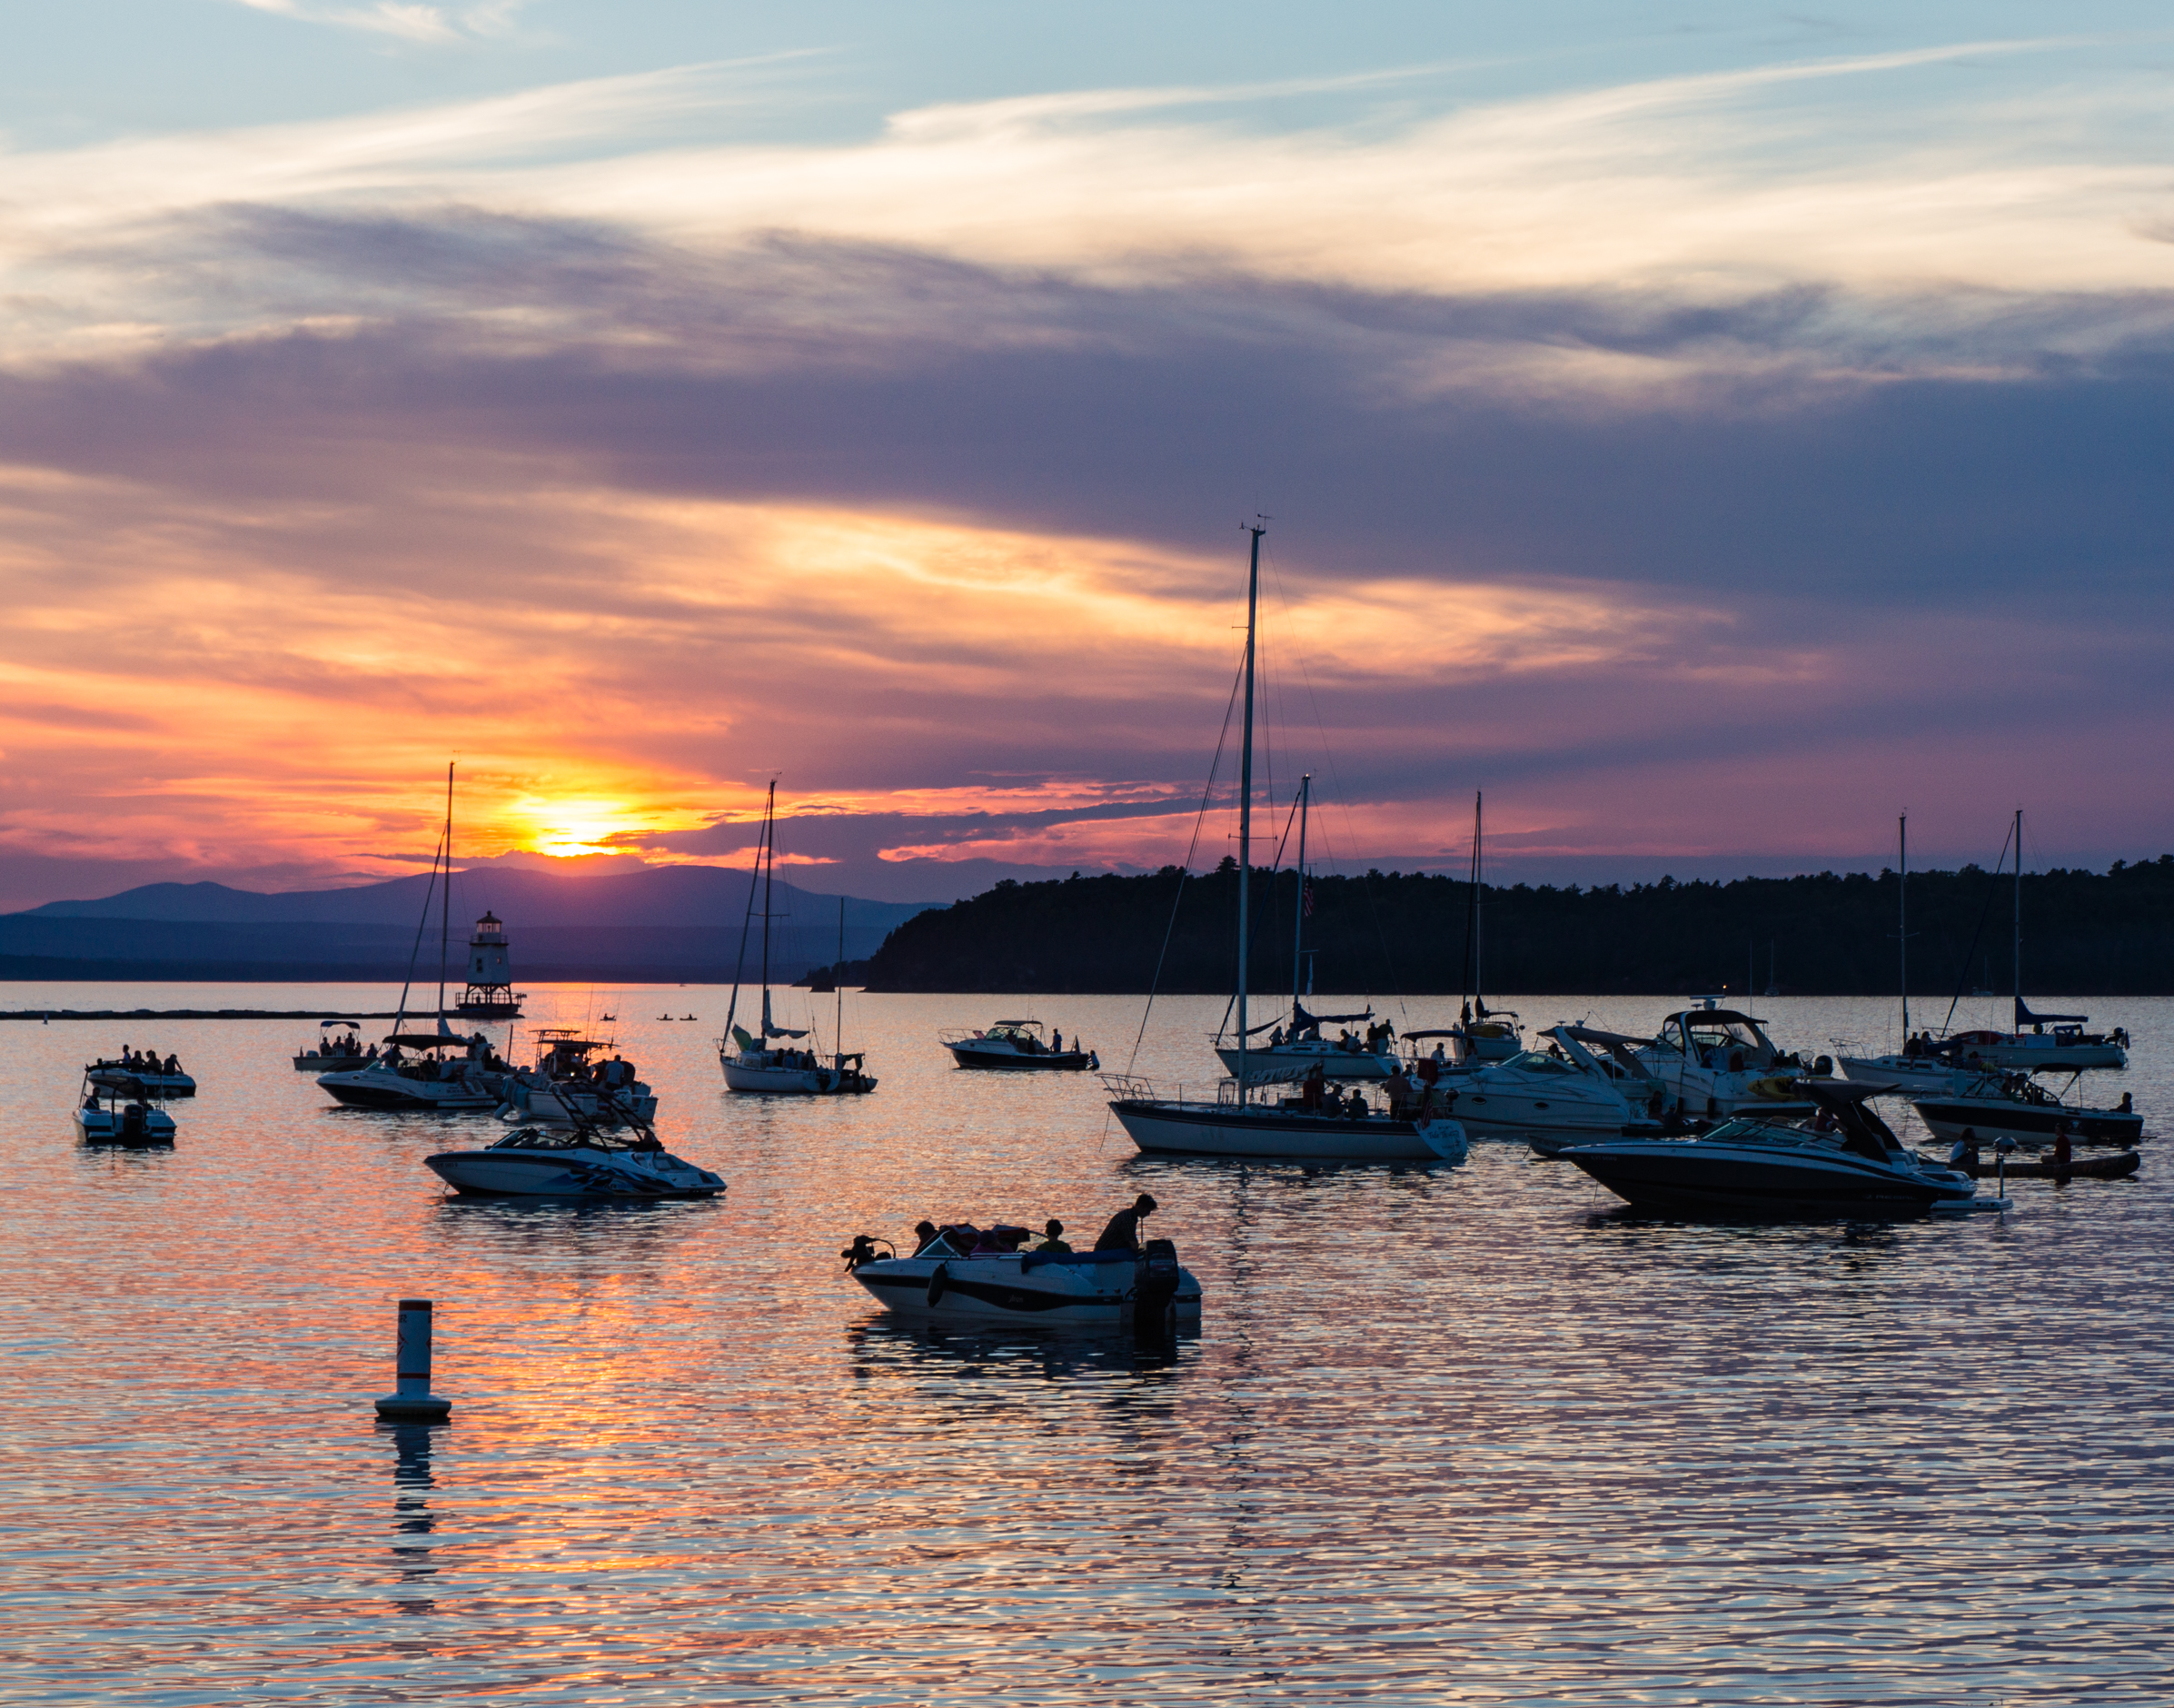 Boaters watching the sunset on Lake Champlain